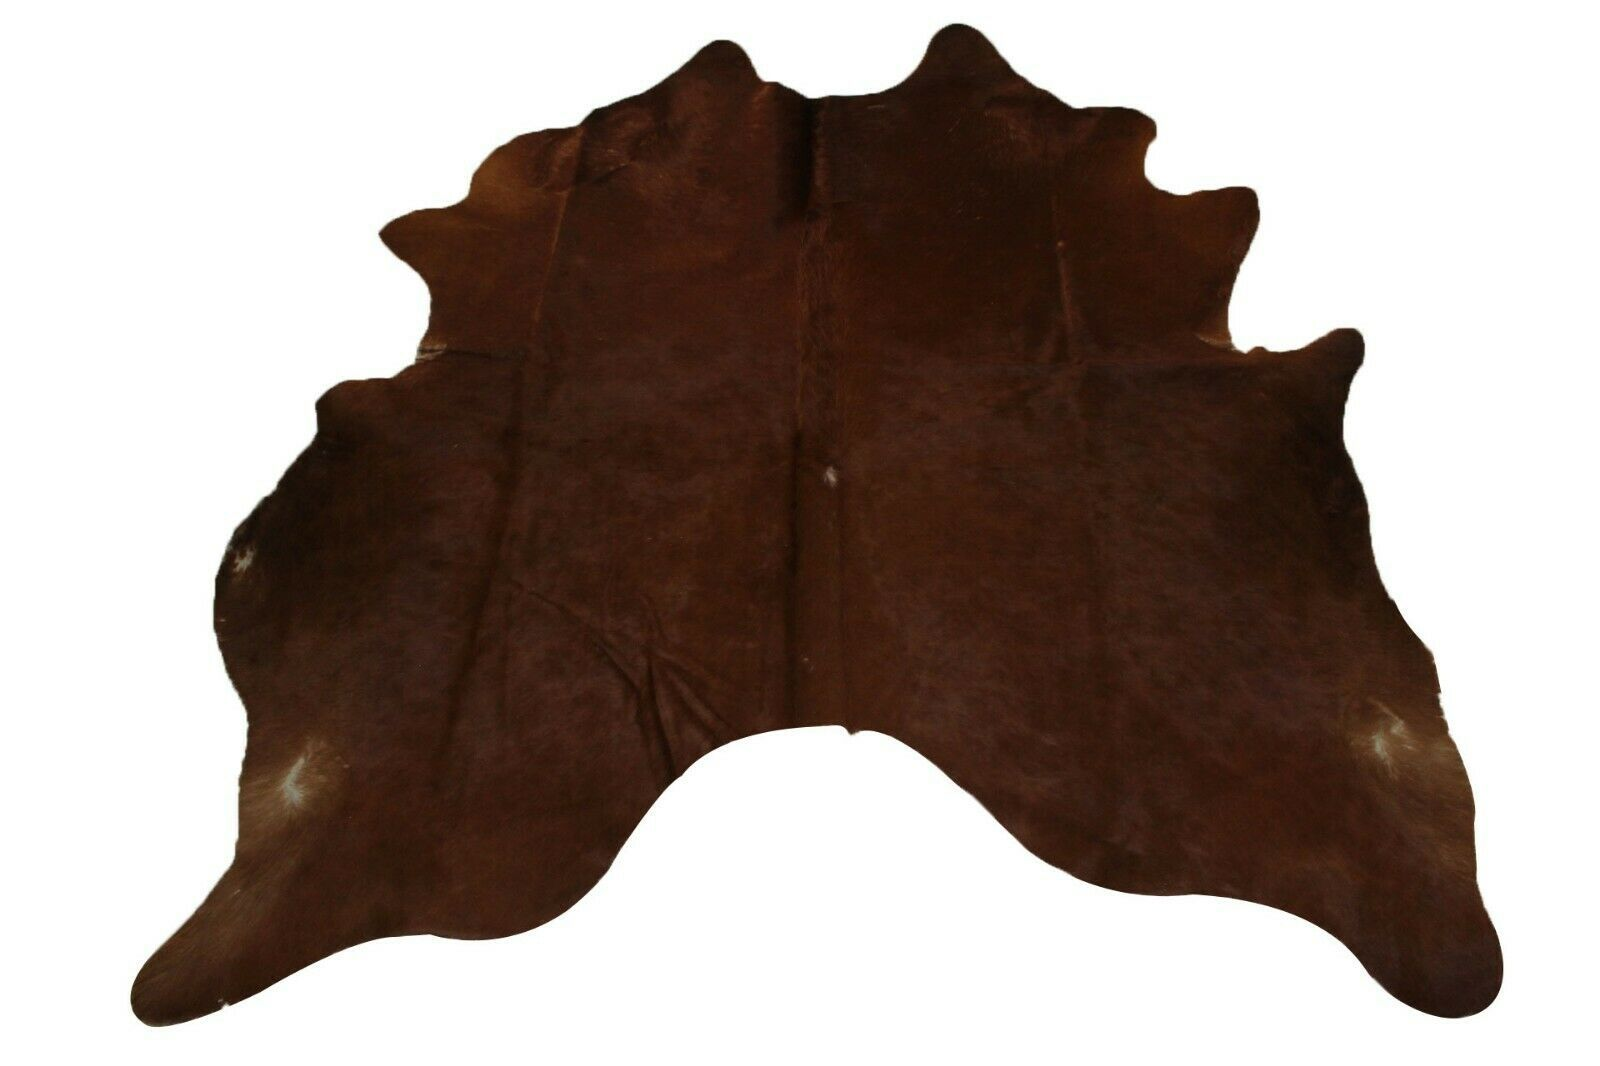 Details About Cowhide Rug Reddish Brown Extra Large Cow Skin Area Rug 6x7 Ft Hair On Leather Cow Skin Cow Hide Rug Cowhide